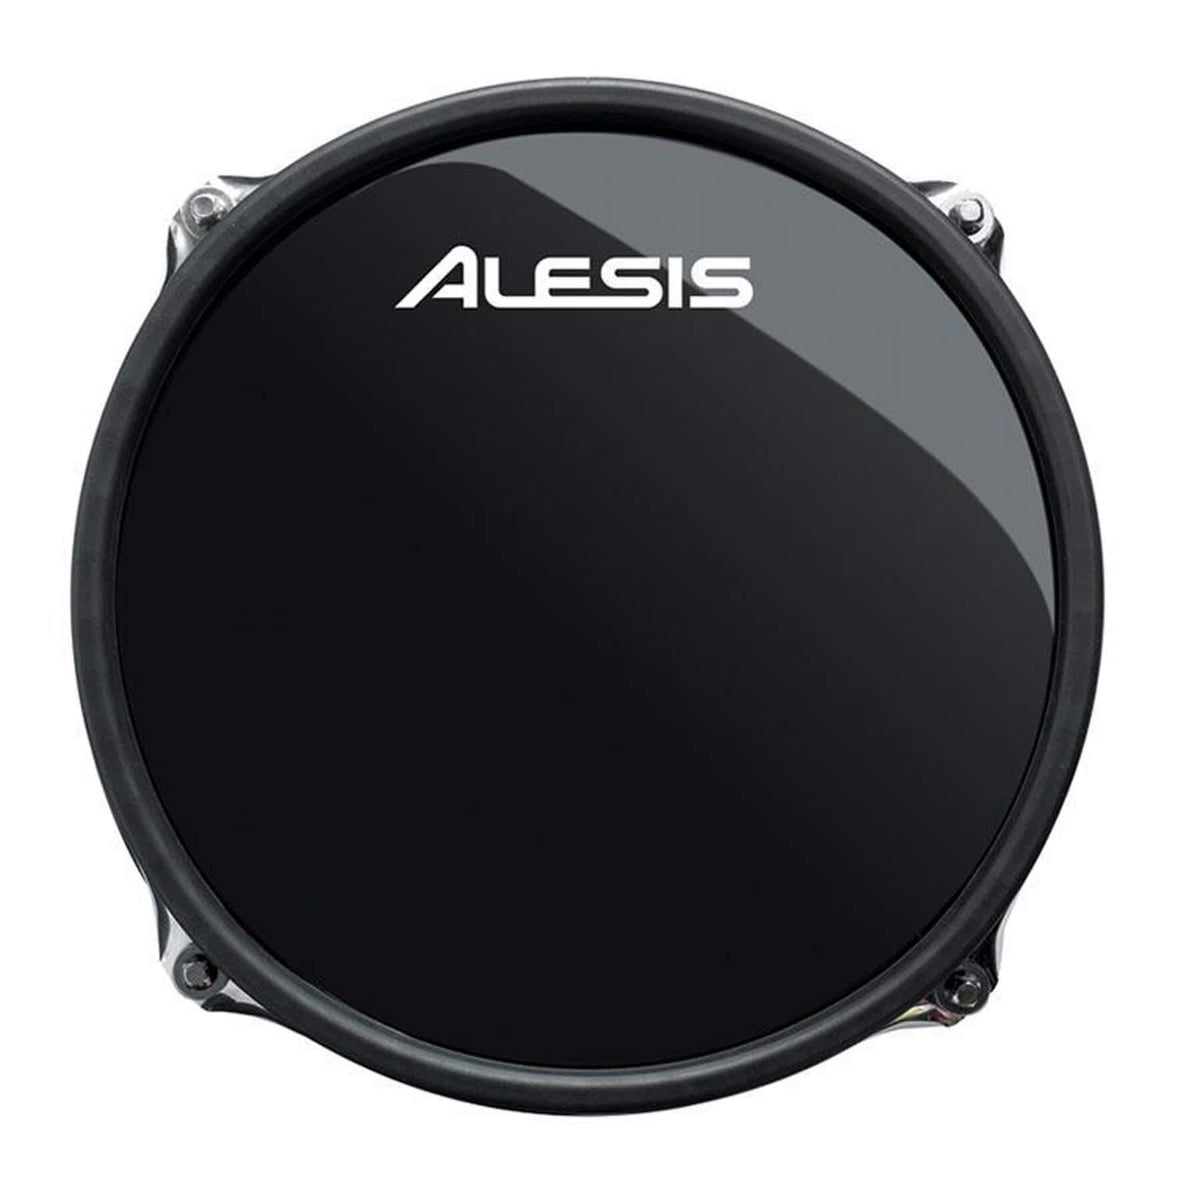 "Alesis 8"" Dual-Zone Mesh Head Drum Pad for Alesis DM10 Studio Mesh Kit Electronic Drum Kits"